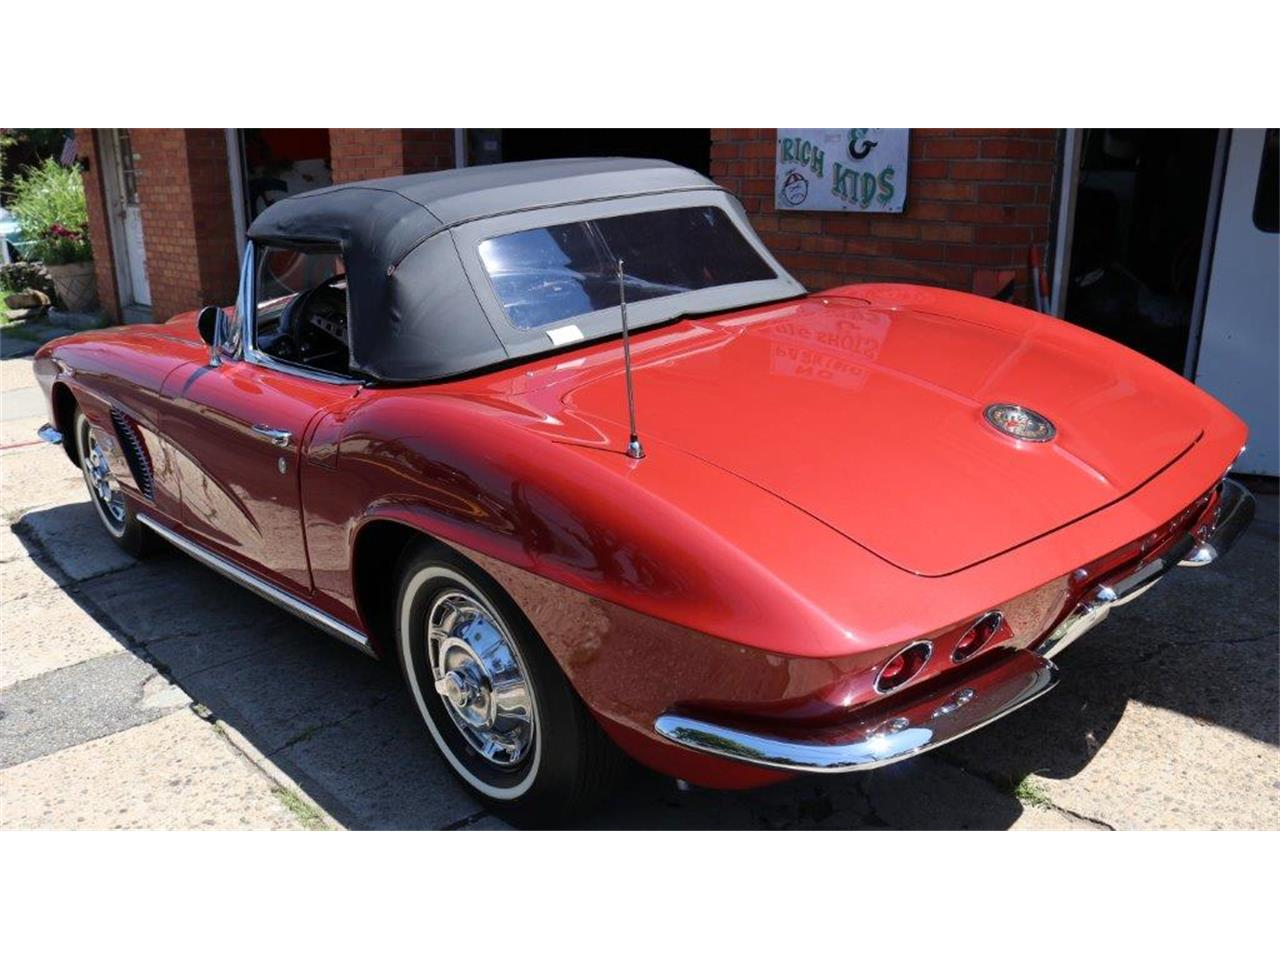 Large Picture of 1962 Corvette located in North Bergen New Jersey - $99,000.00 Offered by a Private Seller - OMBK